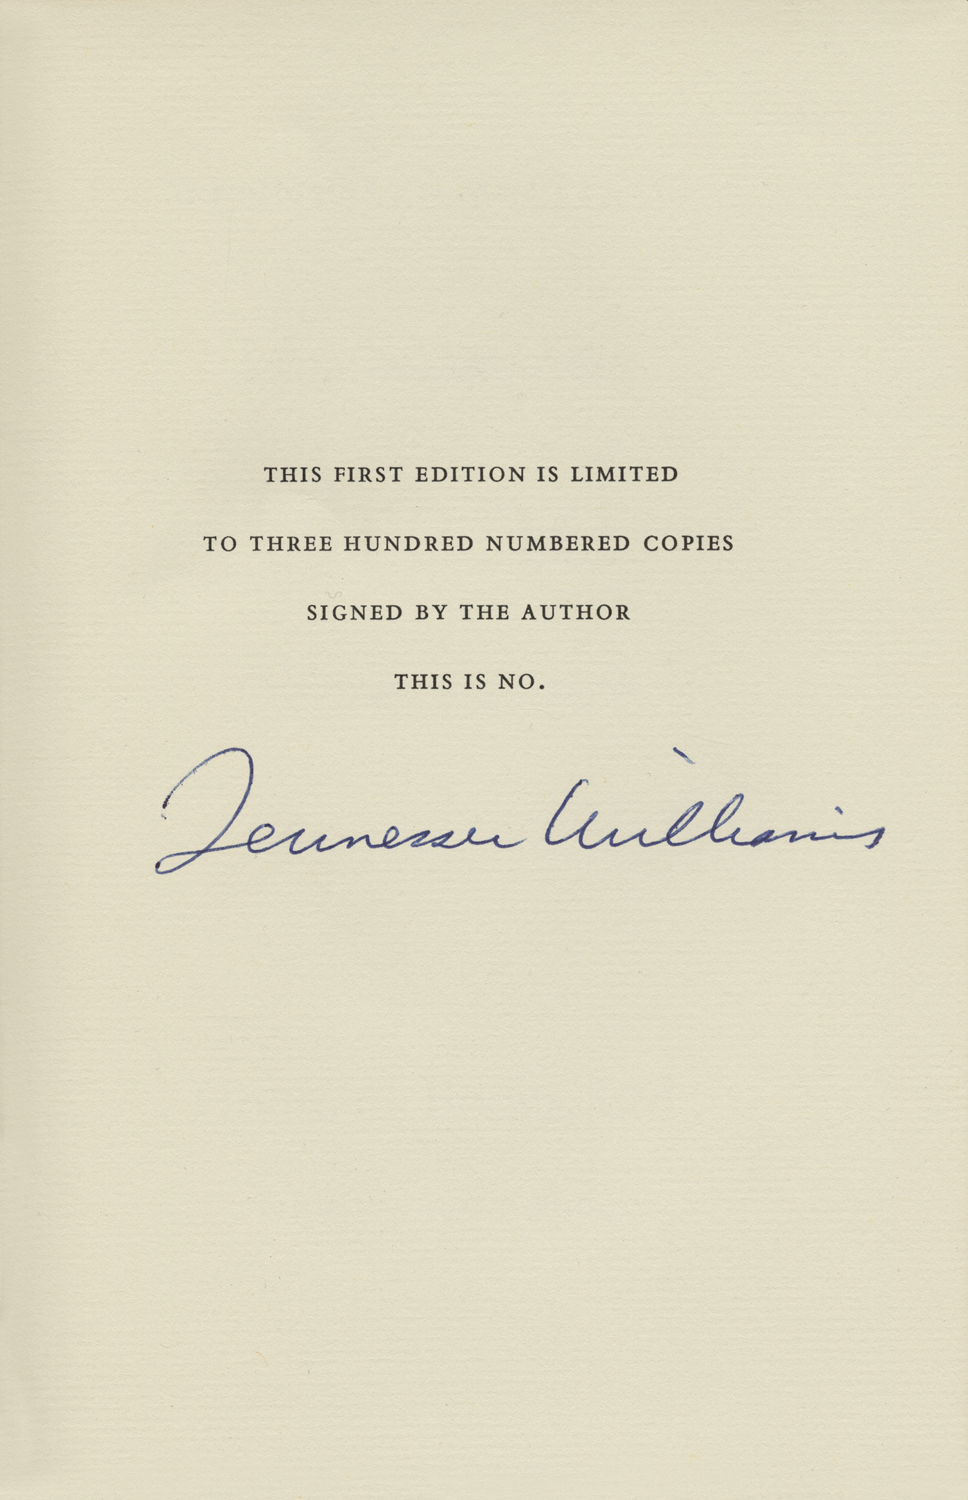 Stinehour_Grand _Tennessee_Williams_signature.png